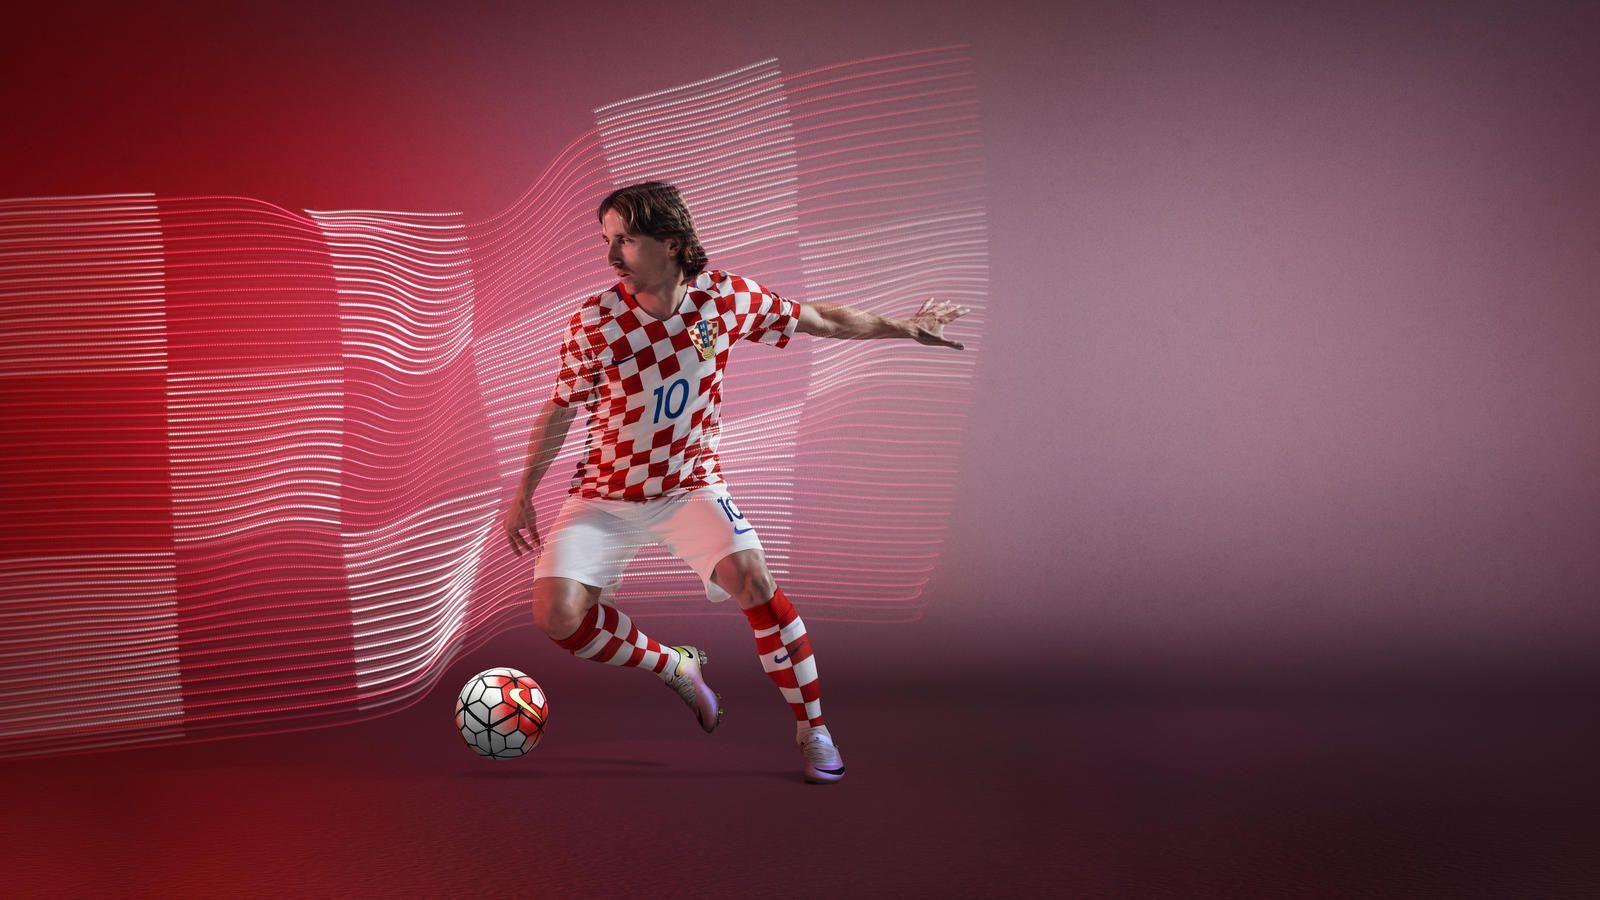 Croatia 2016 National Football Kits - Nike News